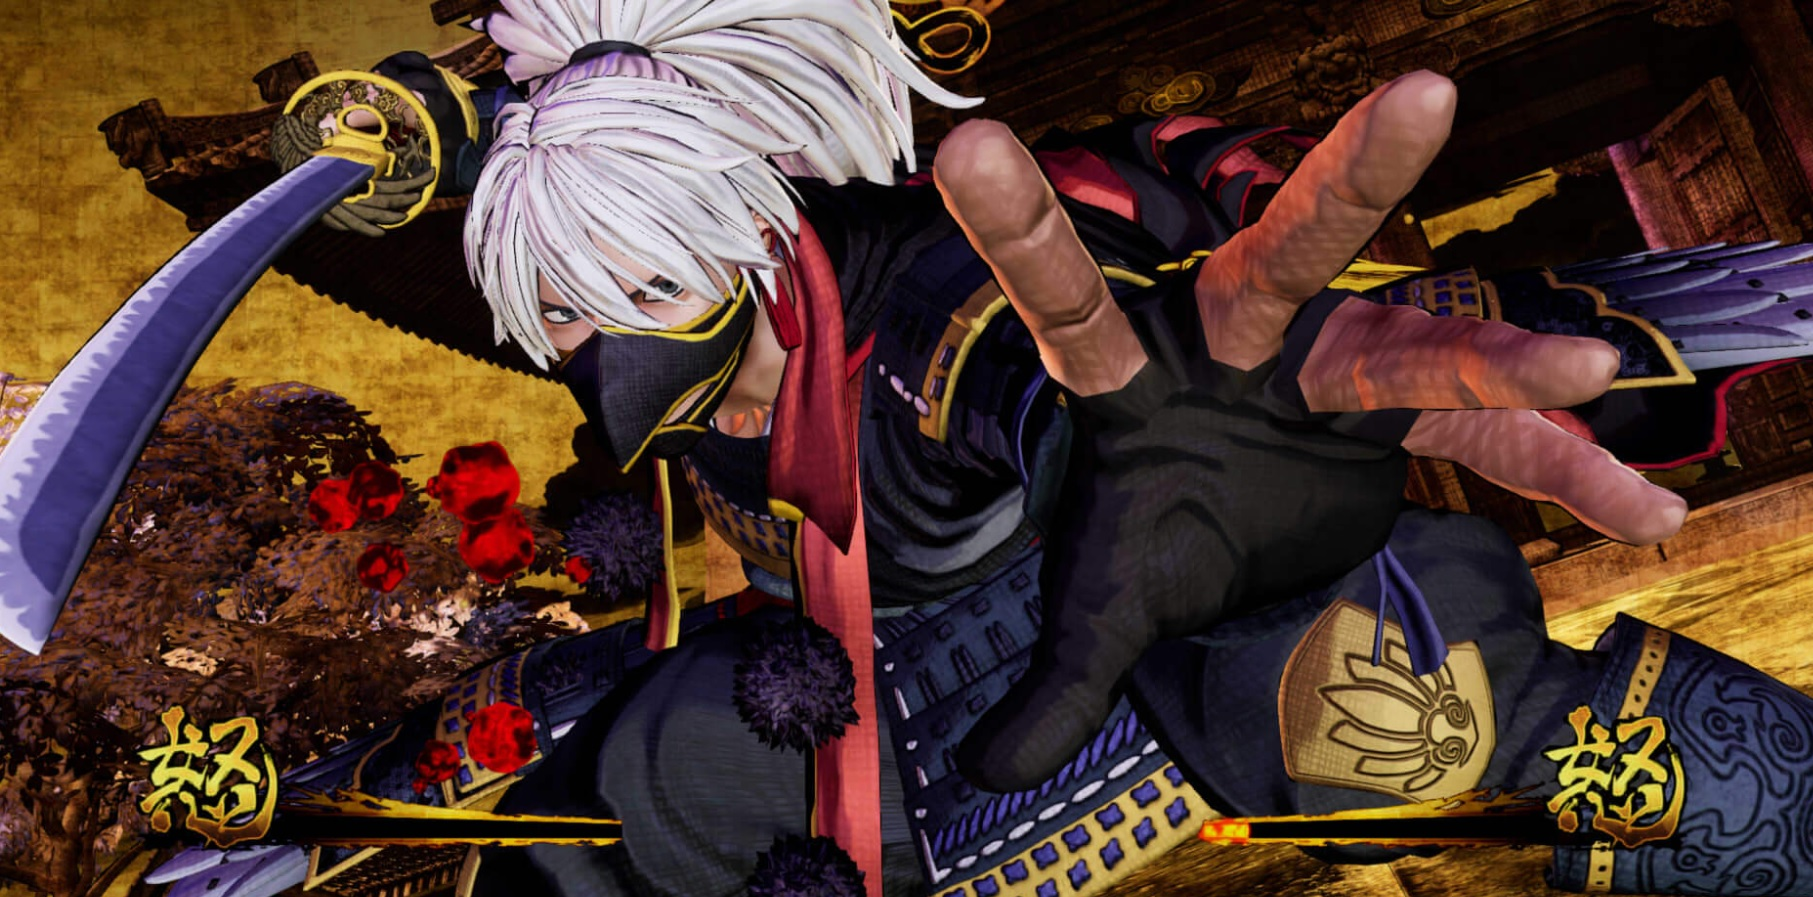 Samurai Shodown's next DLC fighter is free to own, will hail from Honor of Kings screenshot